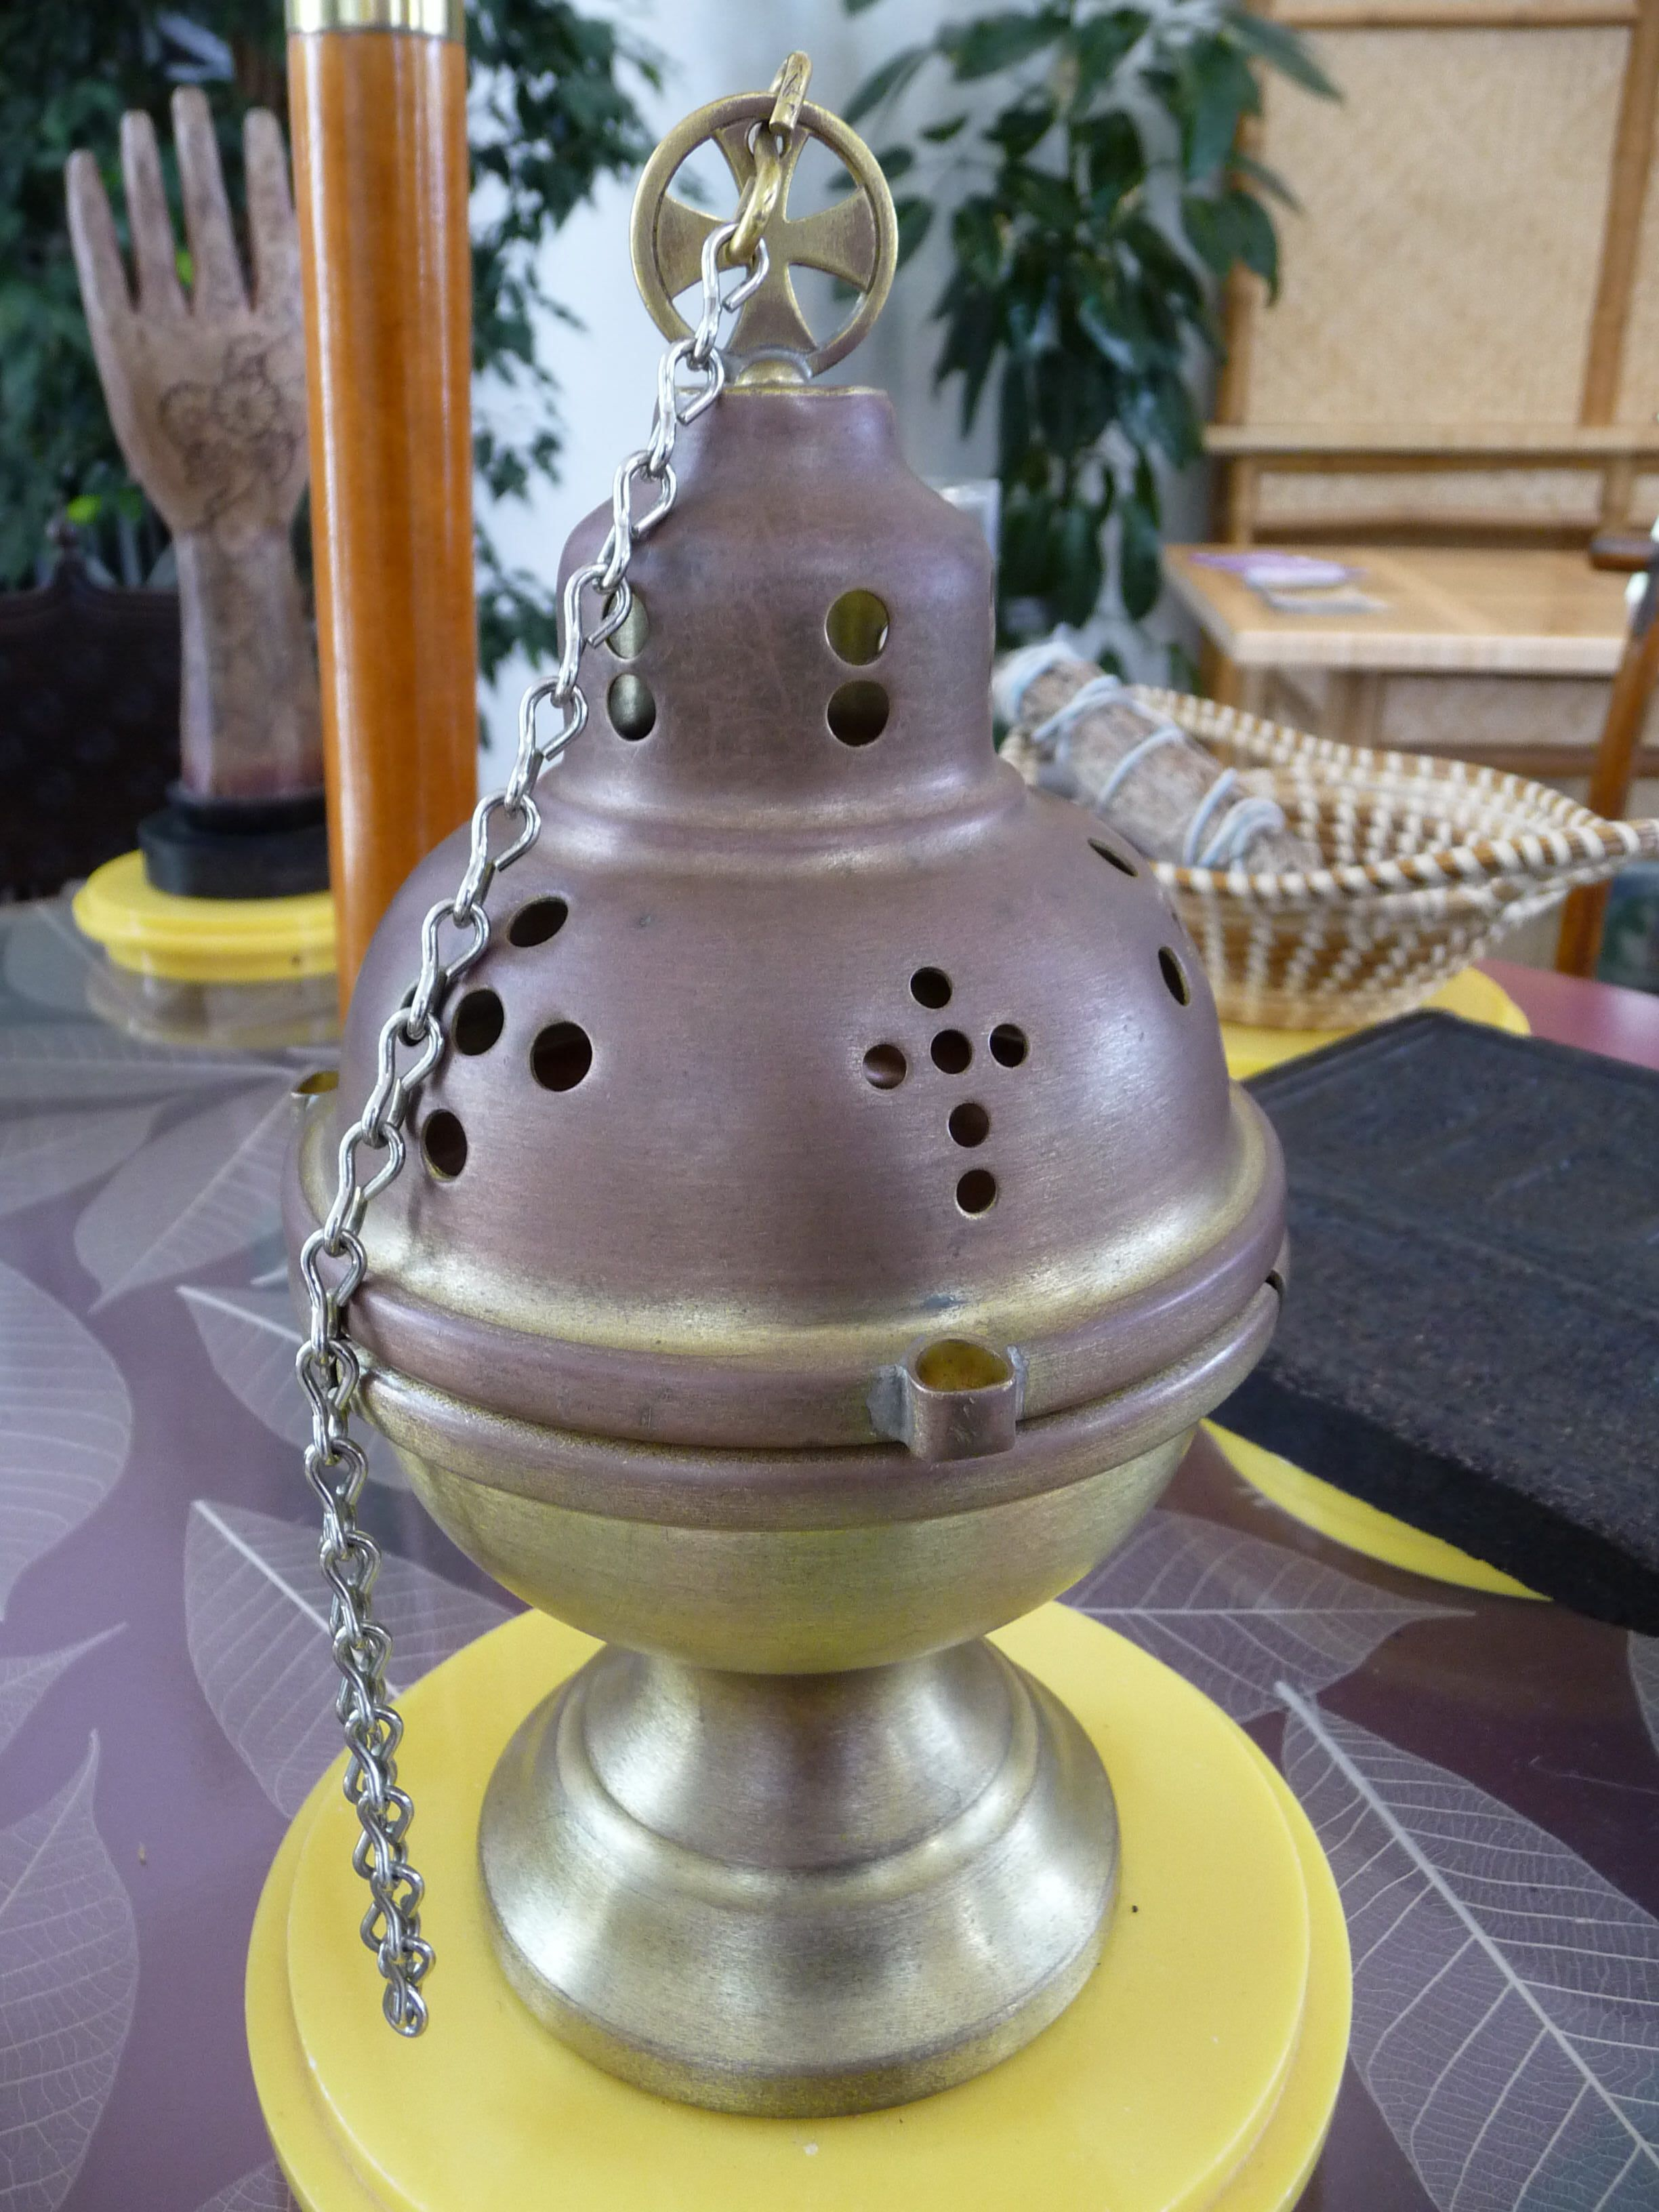 Four Chain Censer The Burning Of Incense Is An Ancient